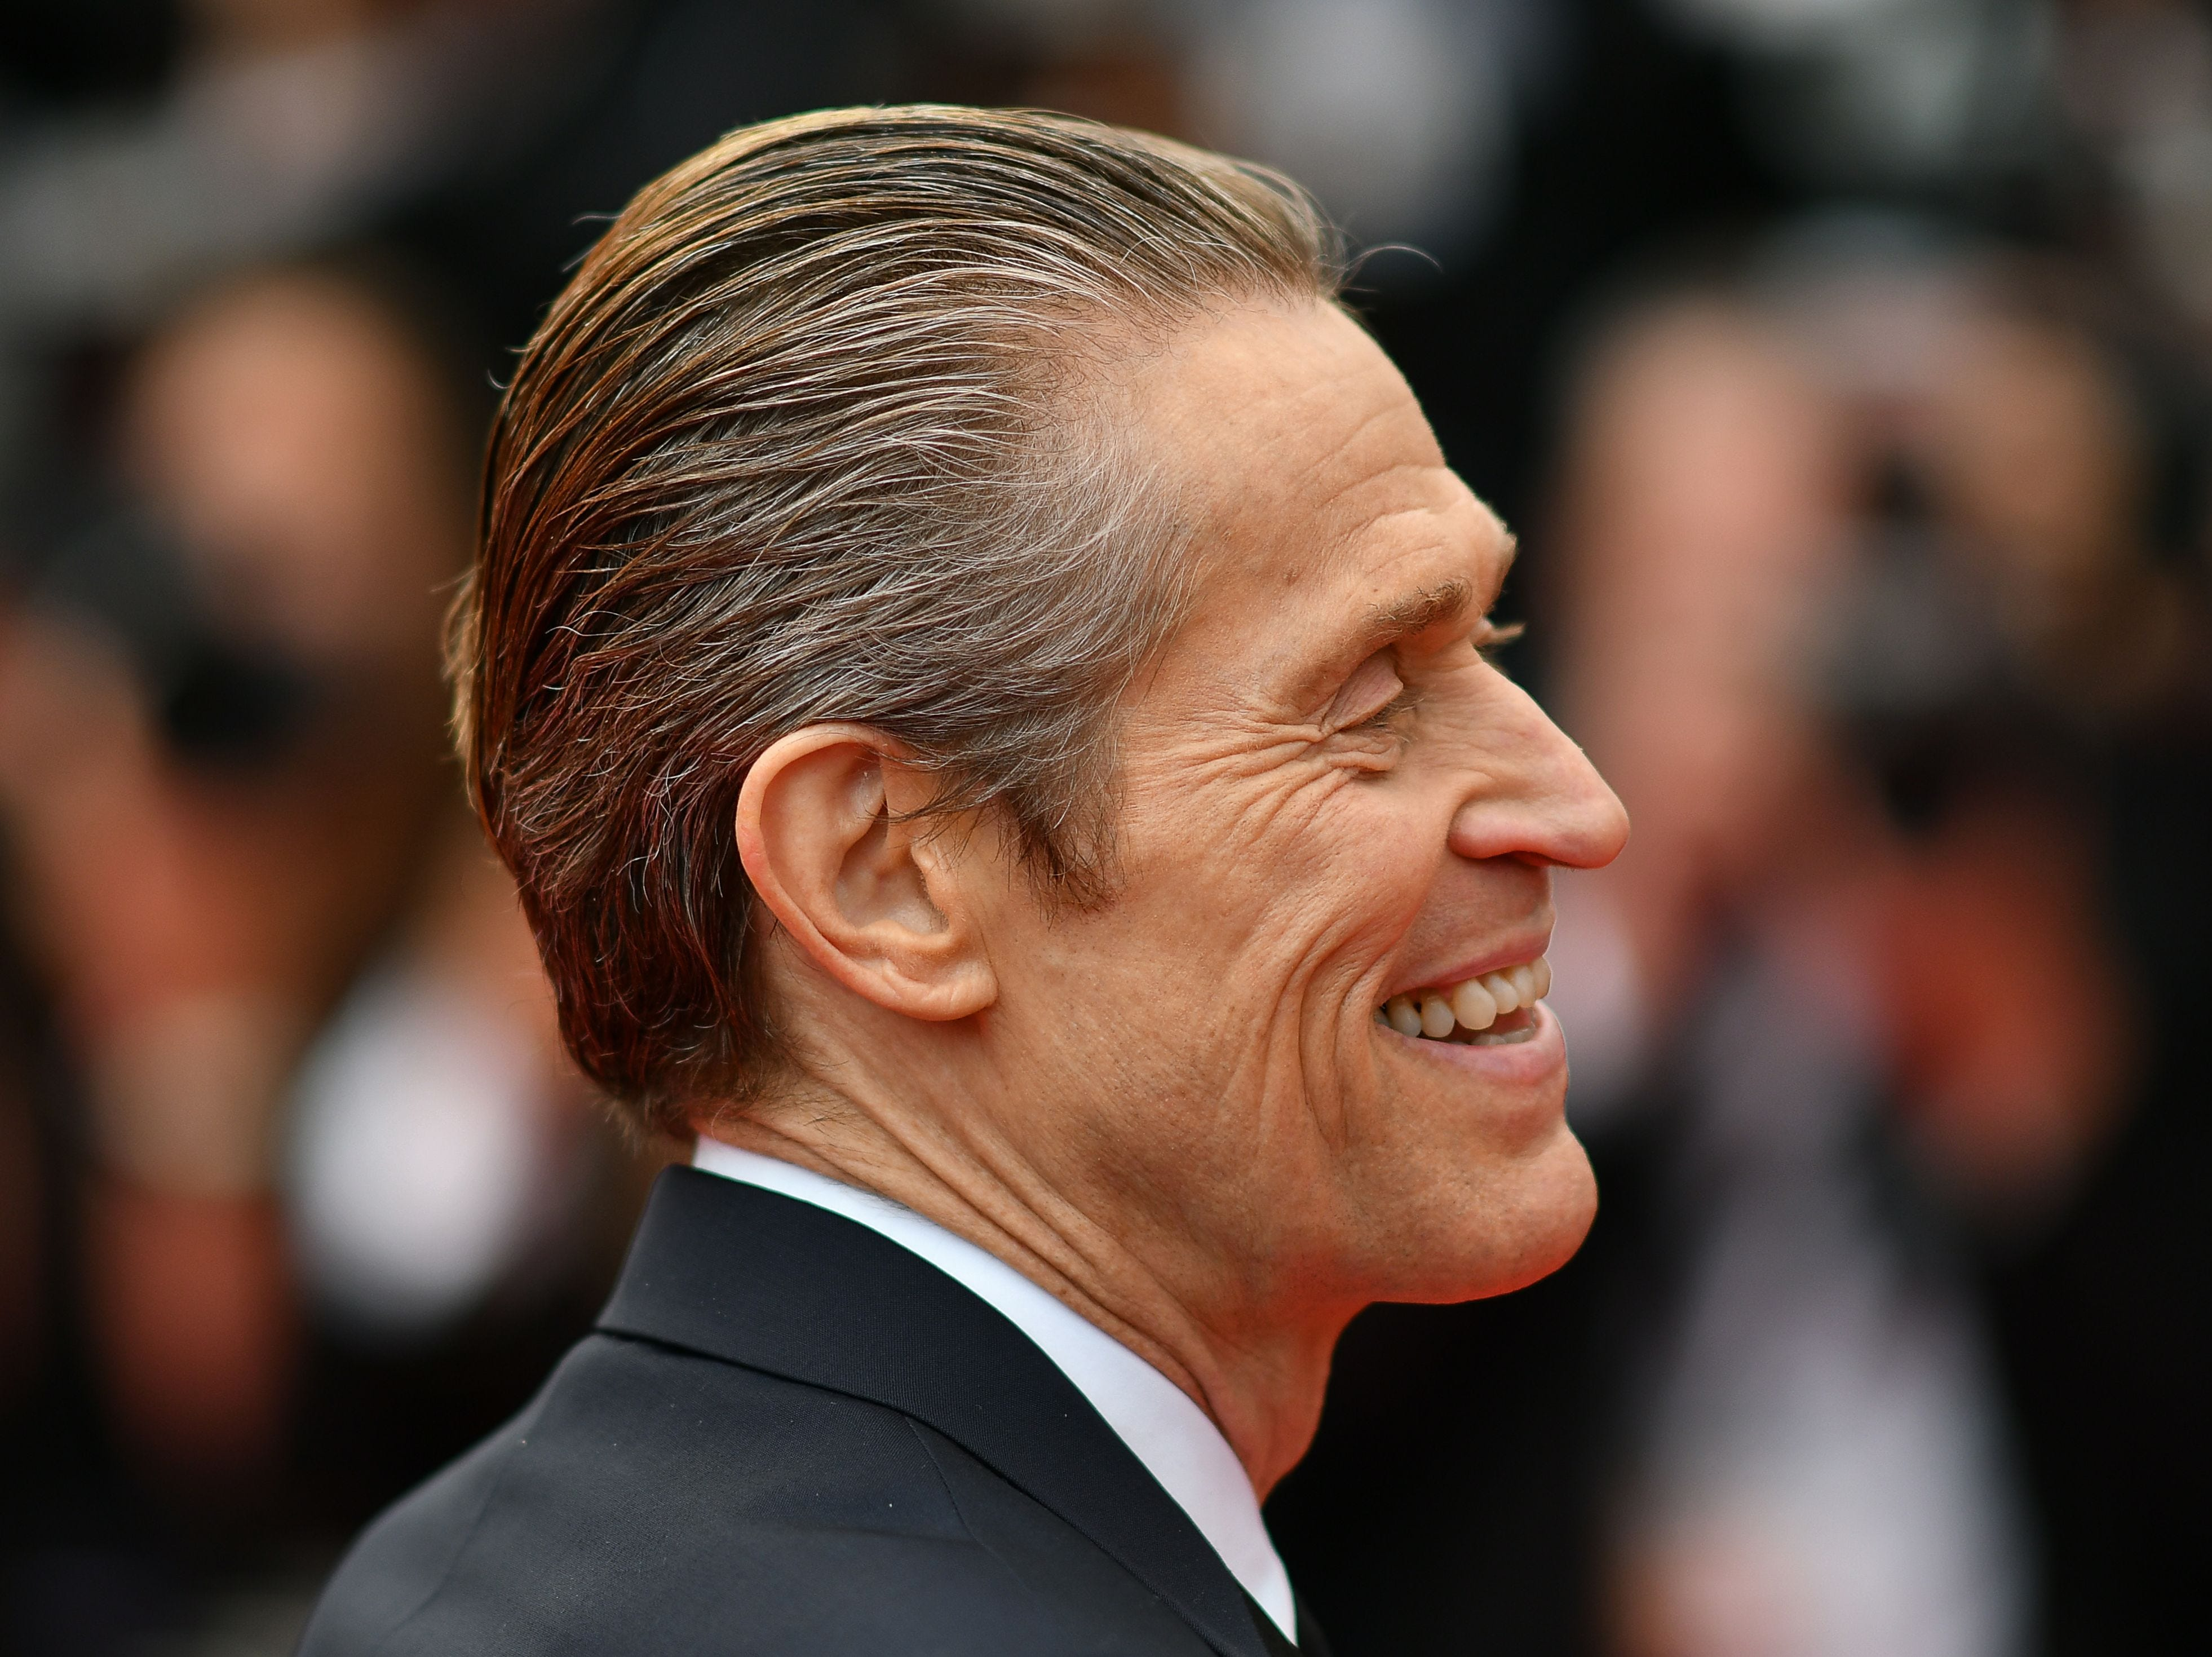 """Willem Dafoe arrives for the screening of film """"Tommaso"""" at the 72nd edition of the Cannes Film Festival in Cannes, France."""